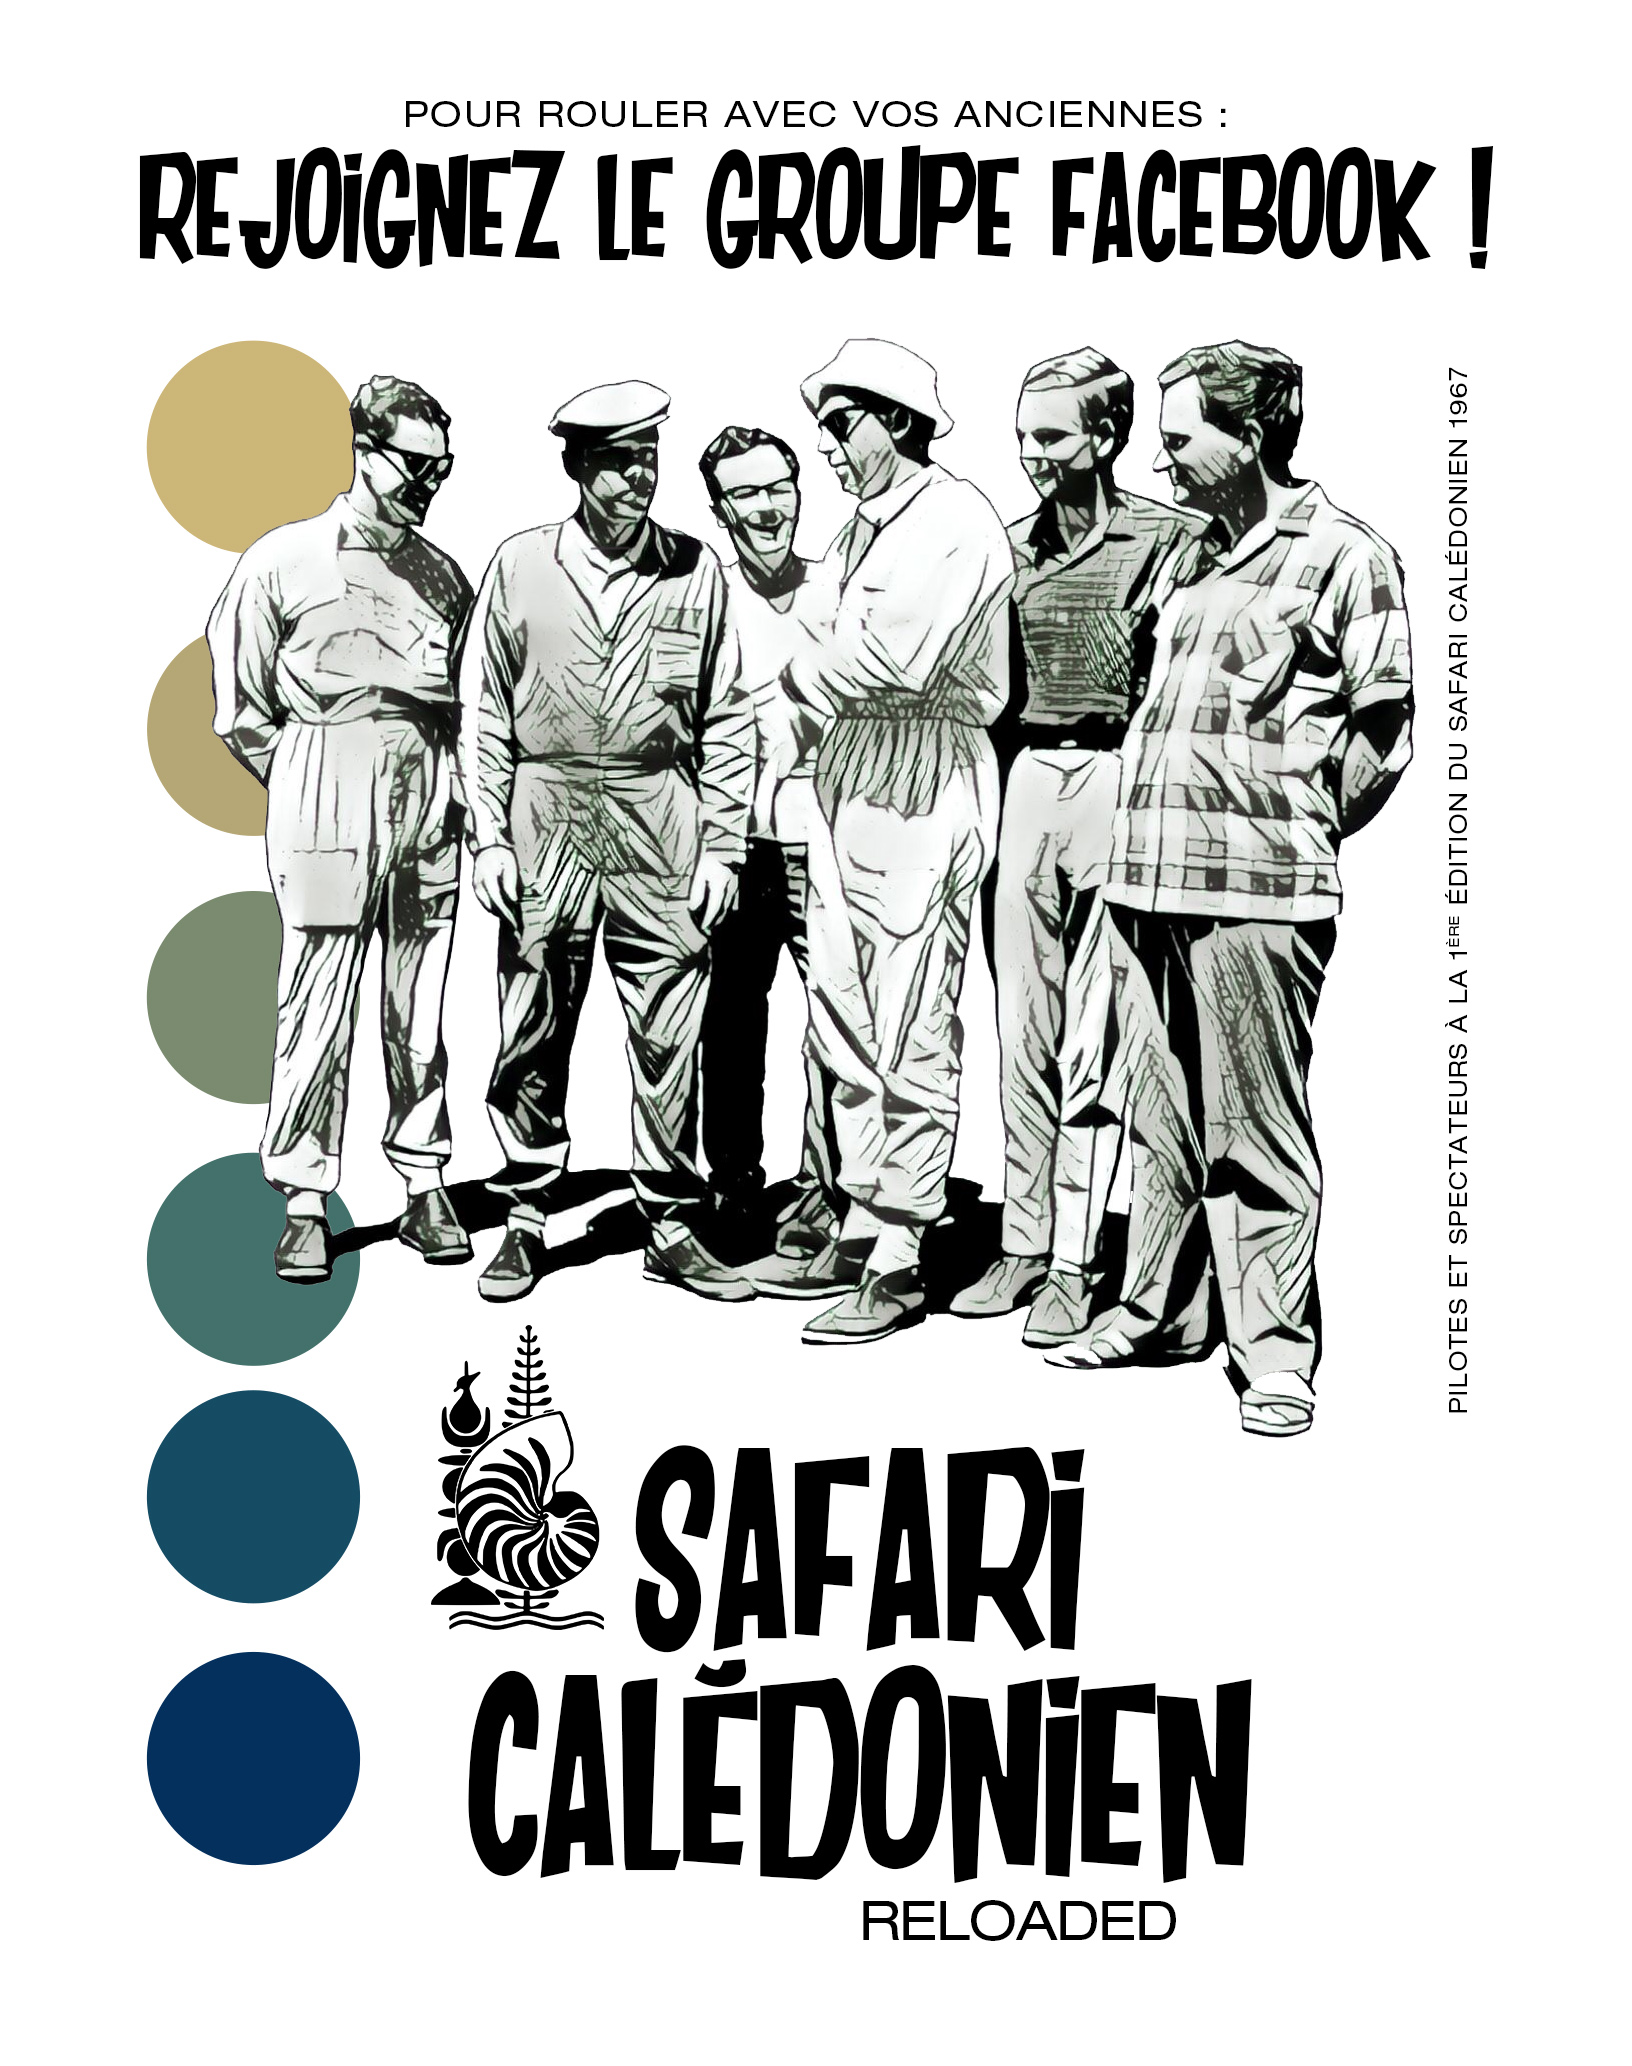 safari-caledonien_groupe-fb1.jpg